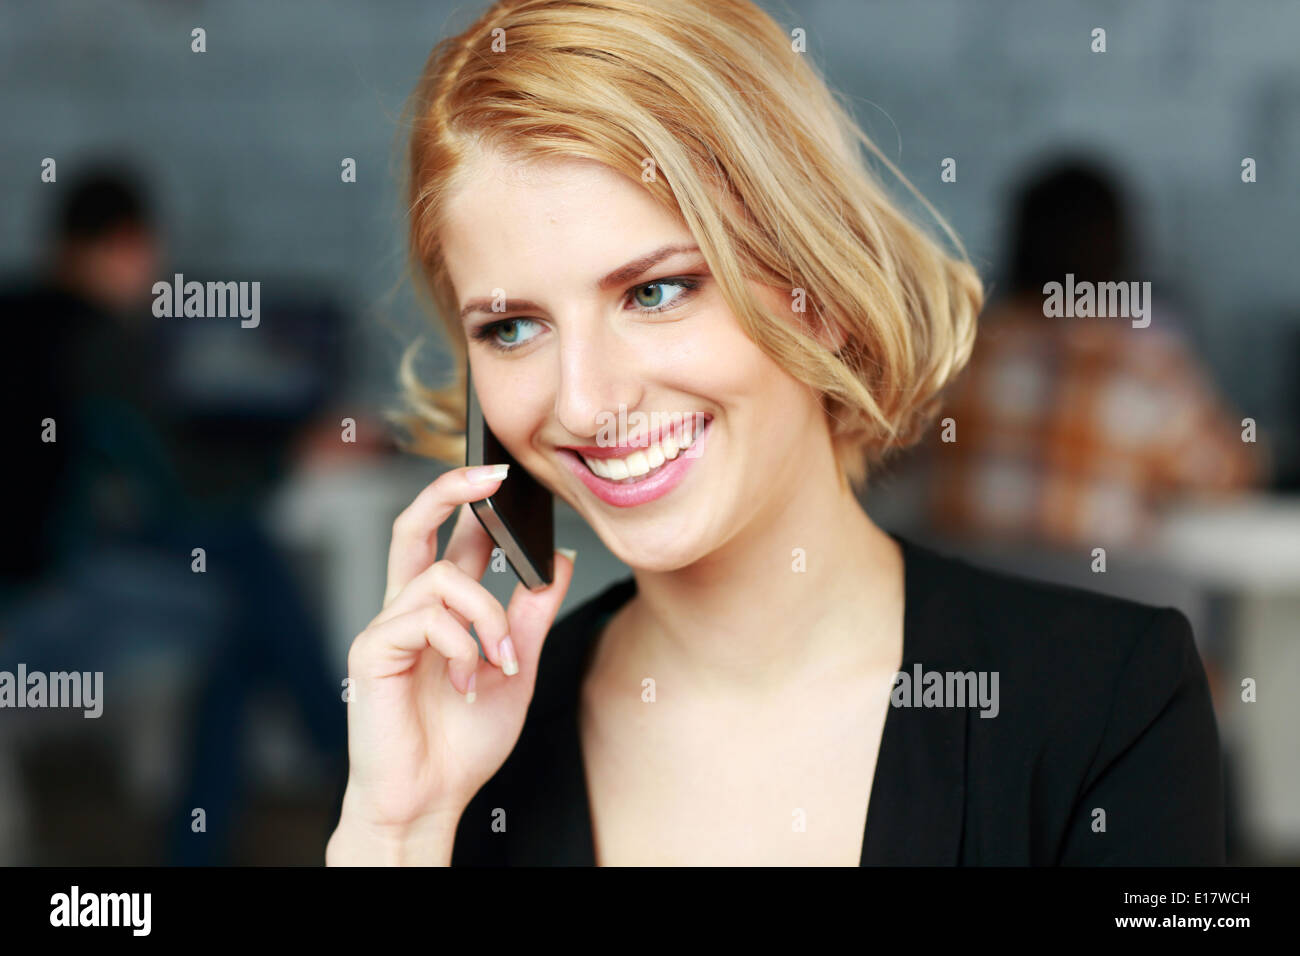 Cheerful blonde businesswoman talking on the phone in office - Stock Image